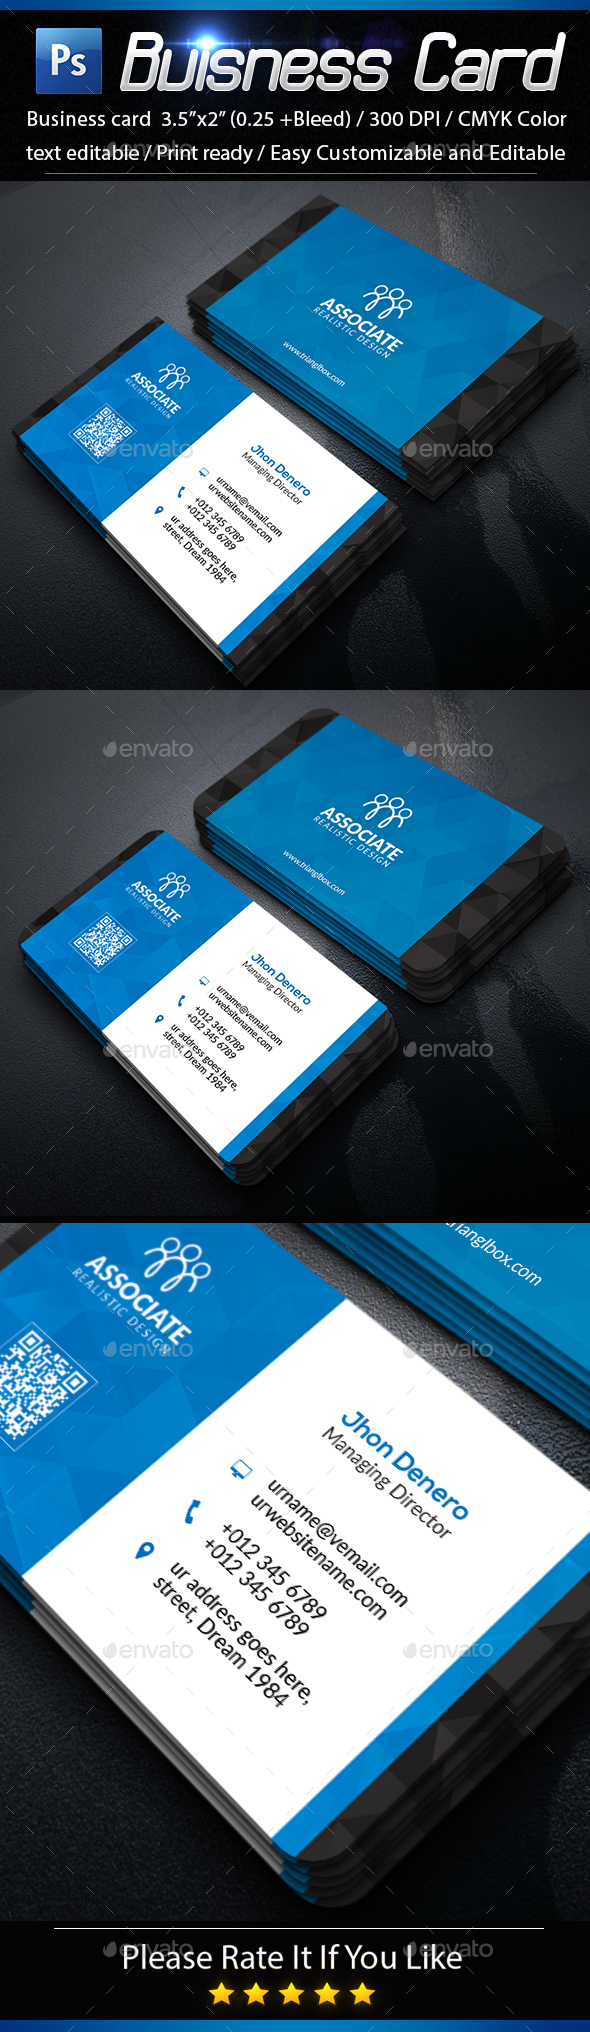 Classic Corporate Business Card Template 7 - Business Cards Print Templates